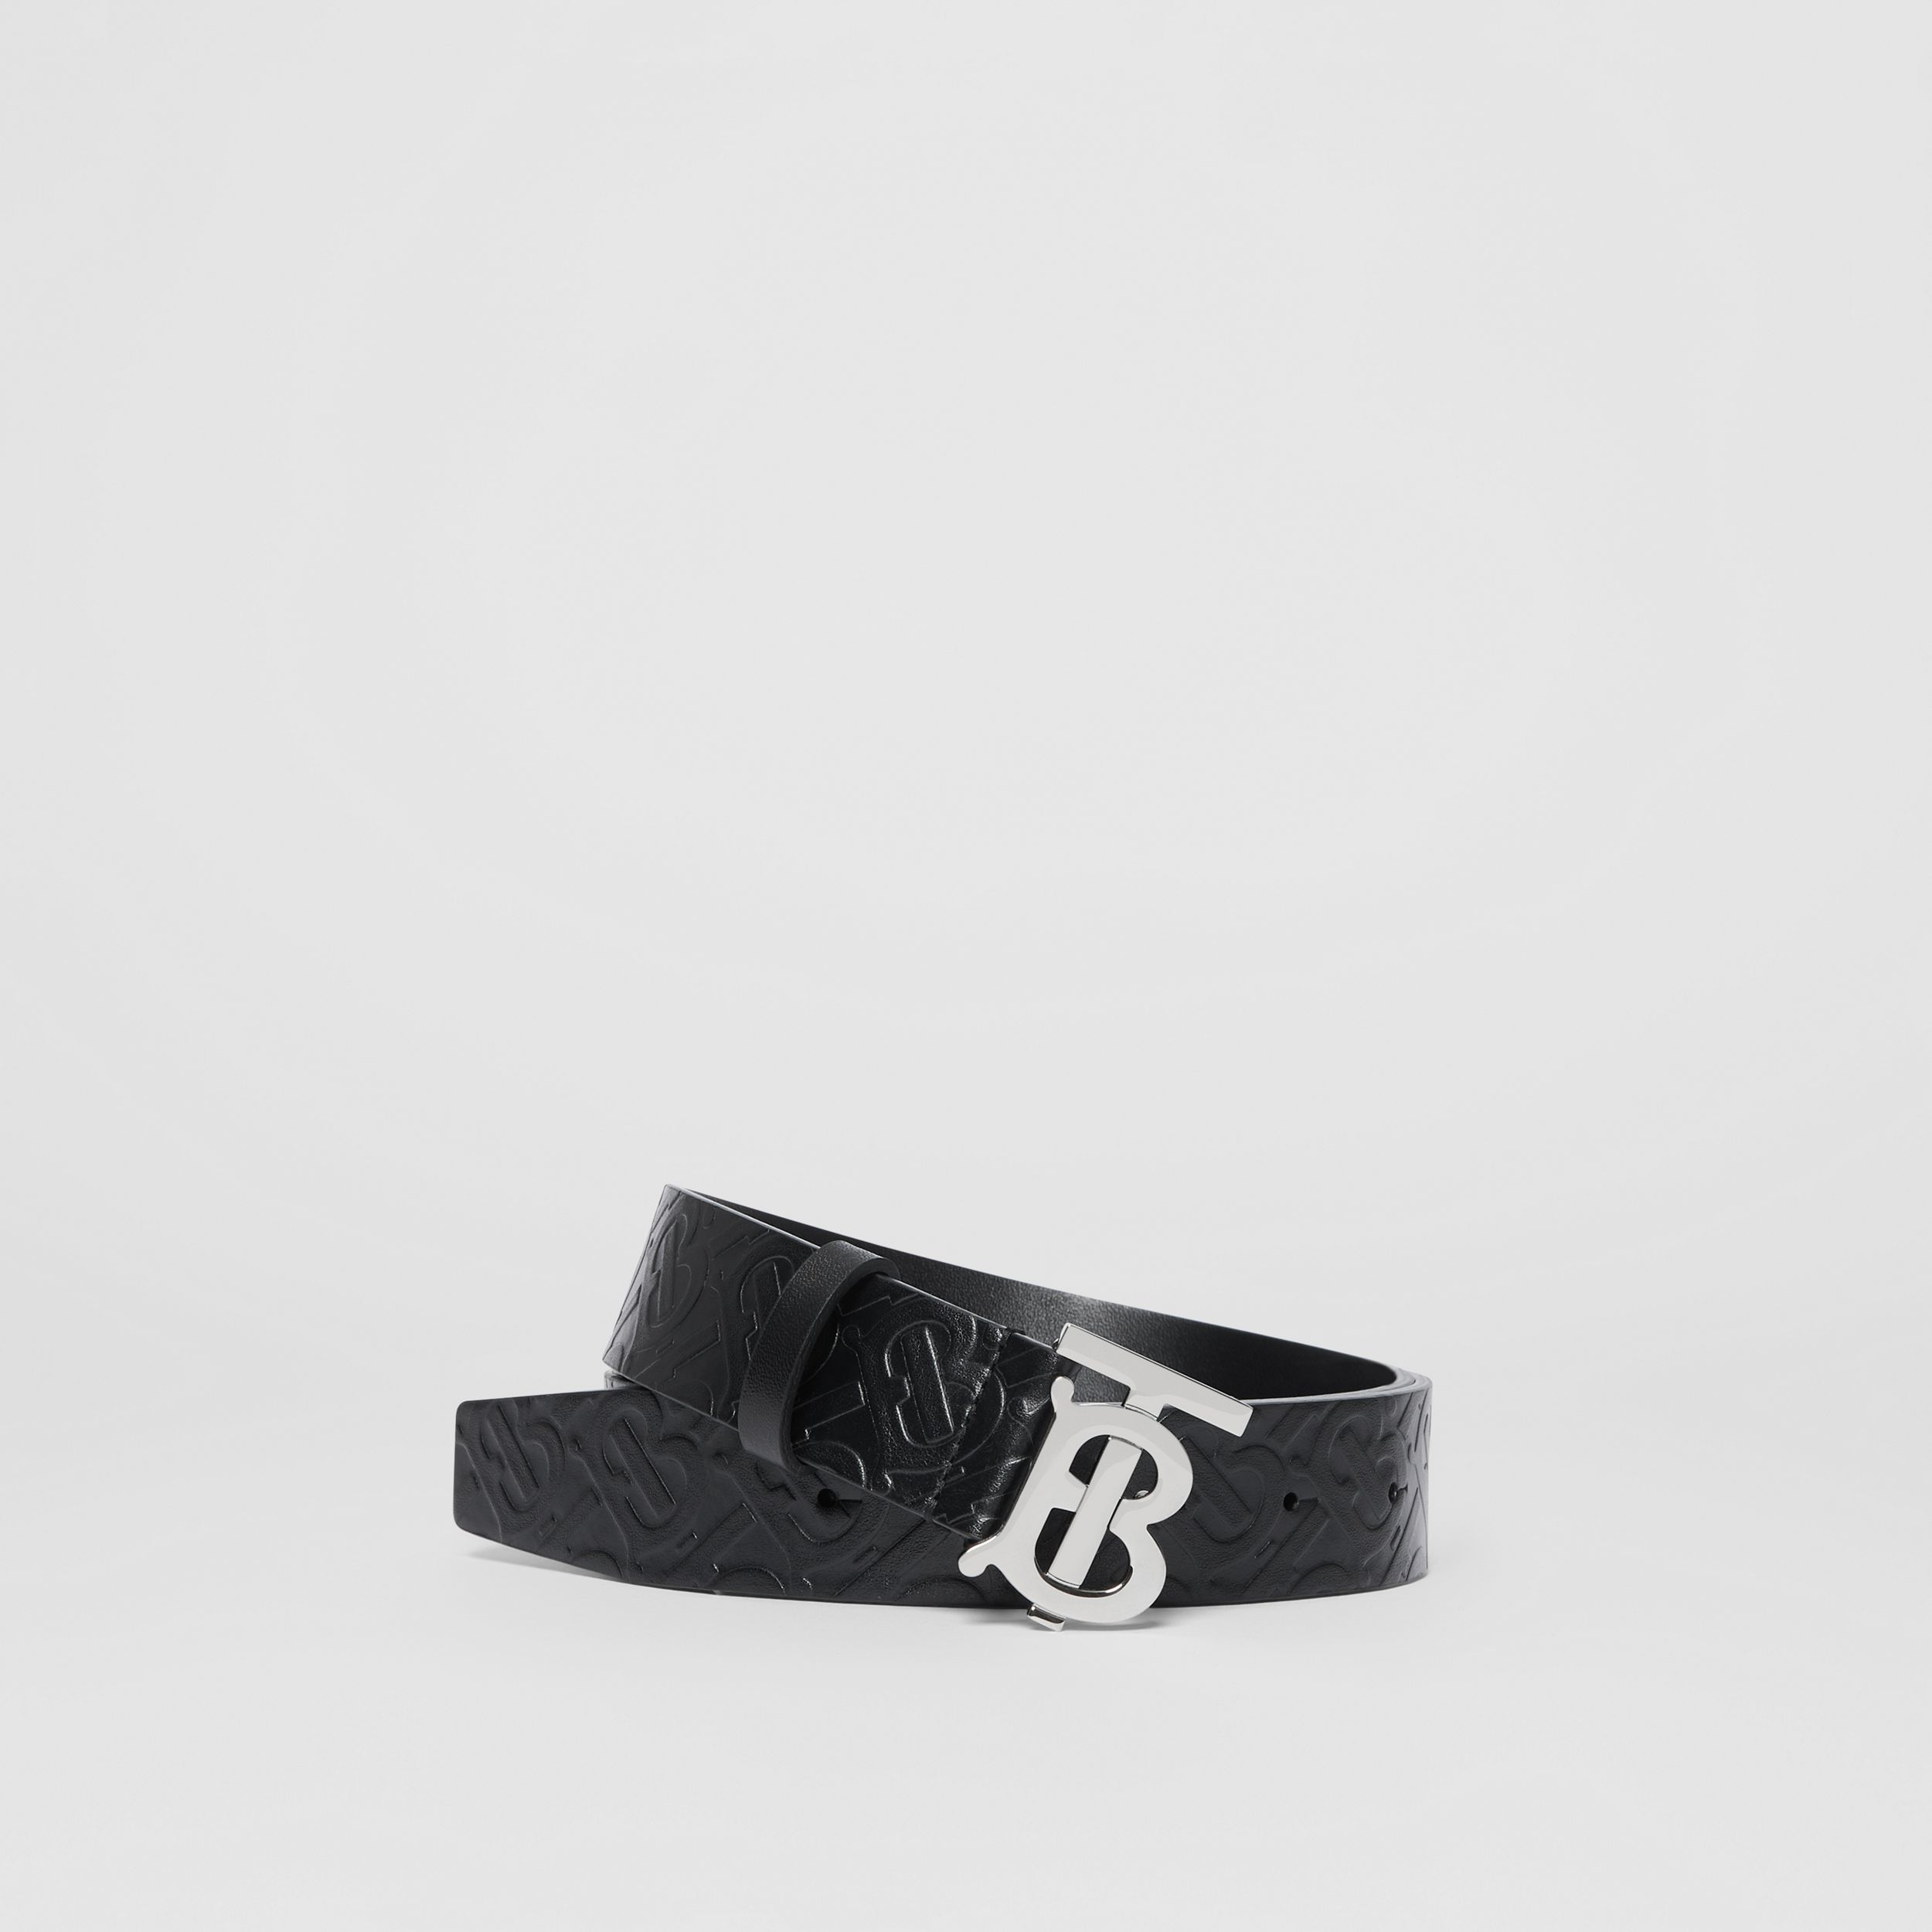 Monogram Motif Monogram Leather Belt in Black - Men | Burberry - 1